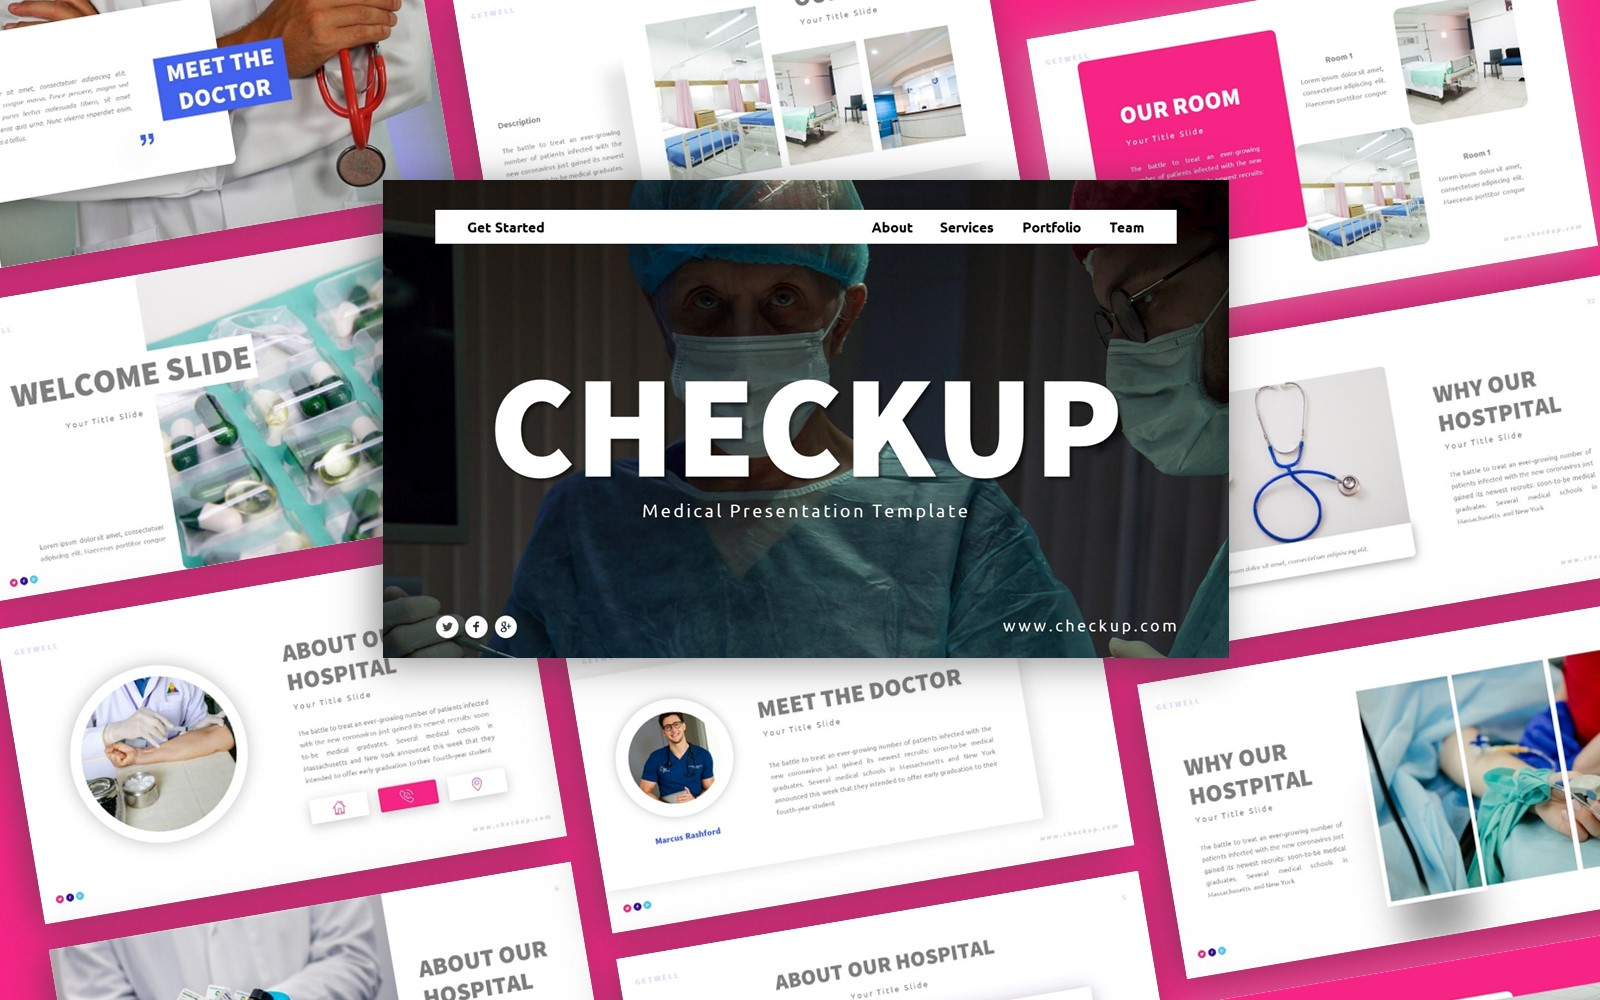 Checkup Medical Presentation PowerPoint Template